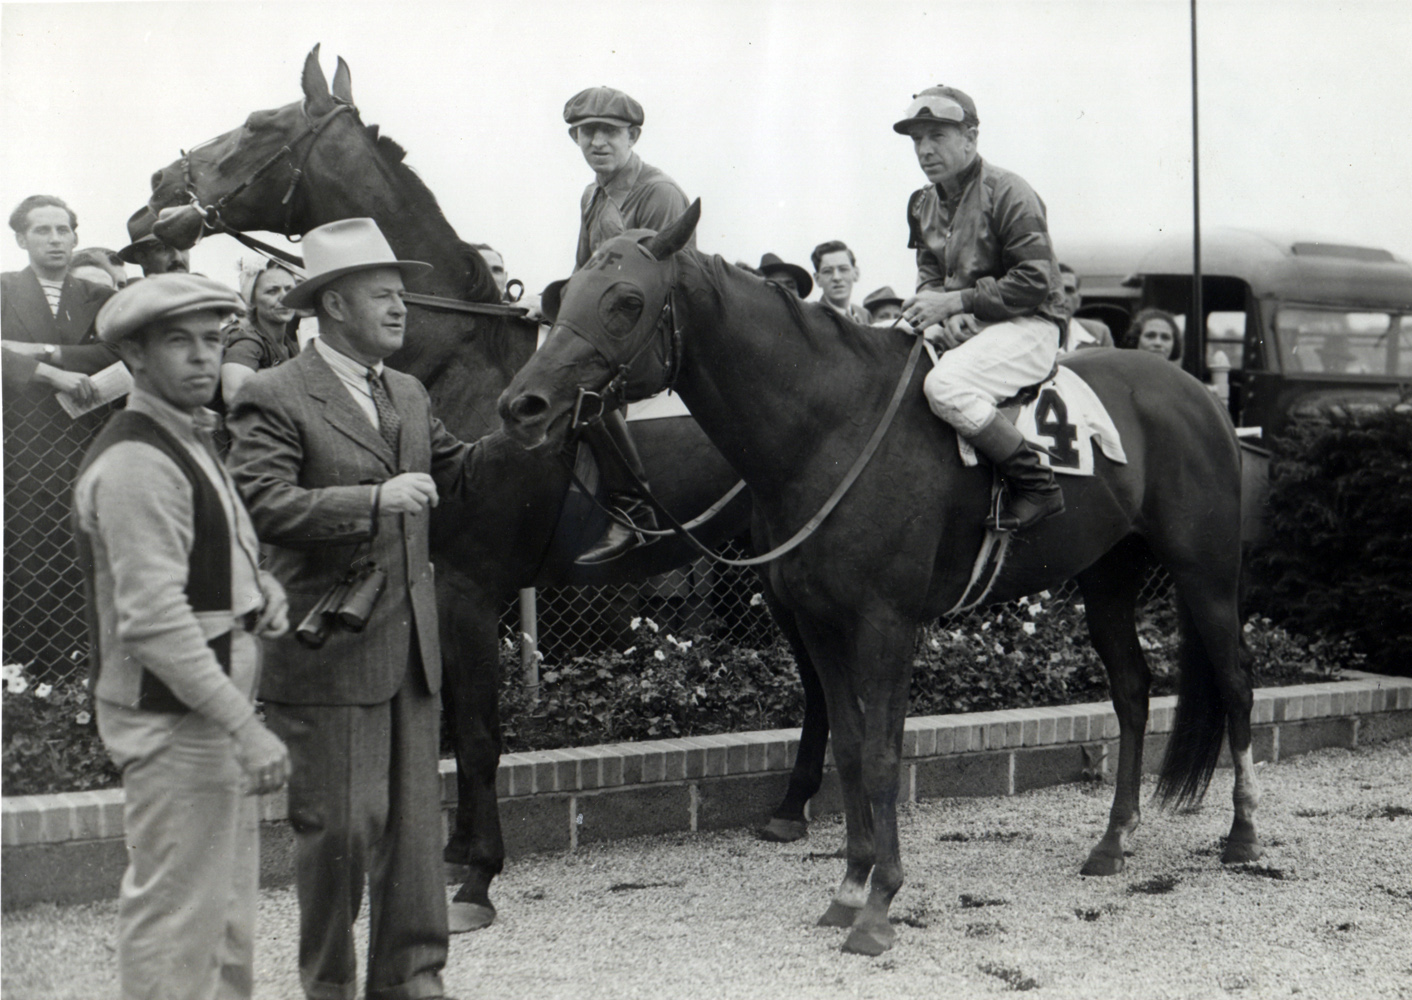 George Woolf and Whirlaway in the winner's circle in 1942 (Museum Collection)